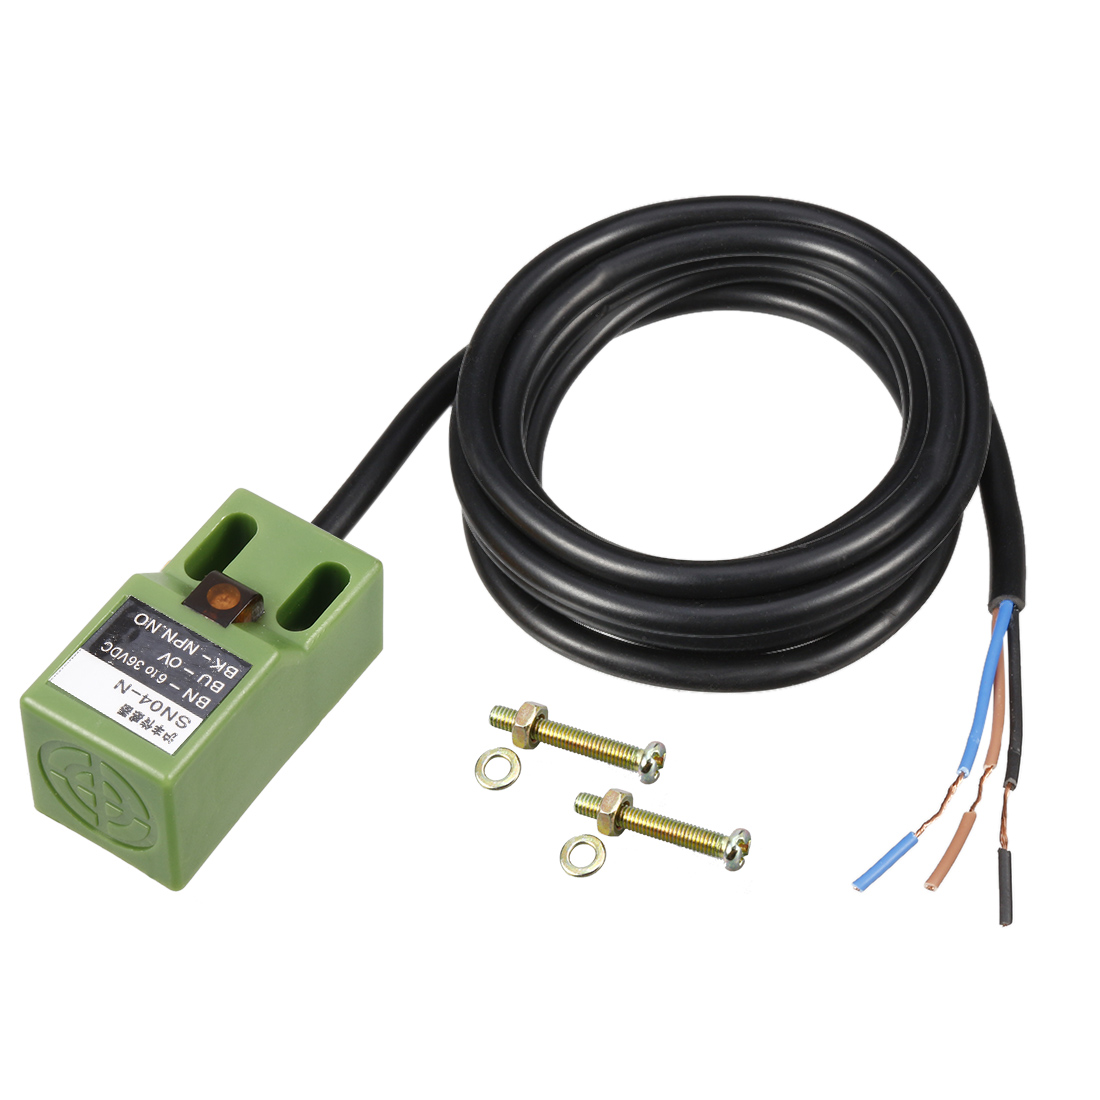 SNO4-N 3-wires DC 6-36V 300mA 5mm NPN Normal Open Square Inductive Proximity Sensor Detection Switch